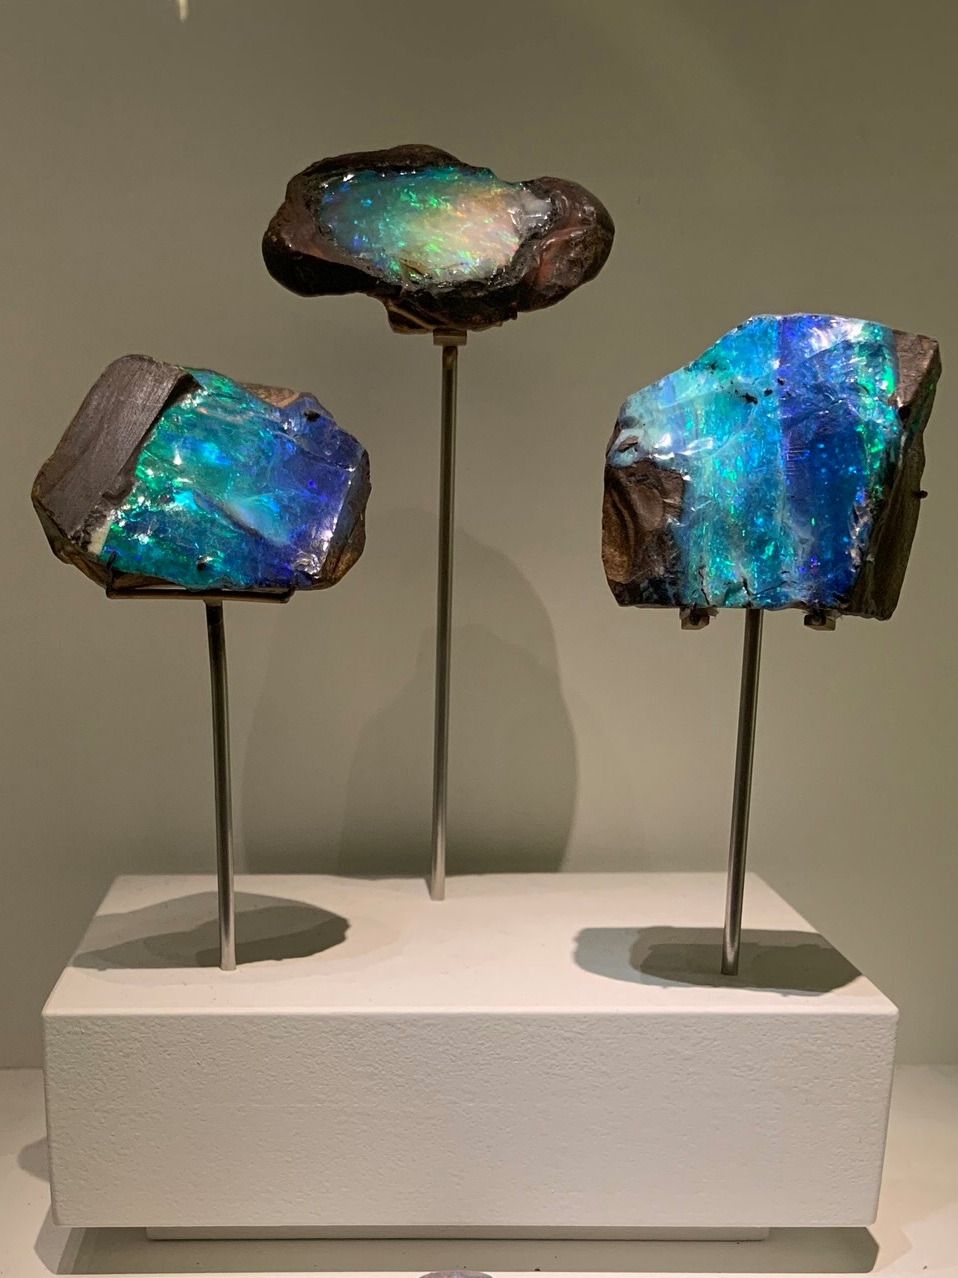 Dazzling opals on display